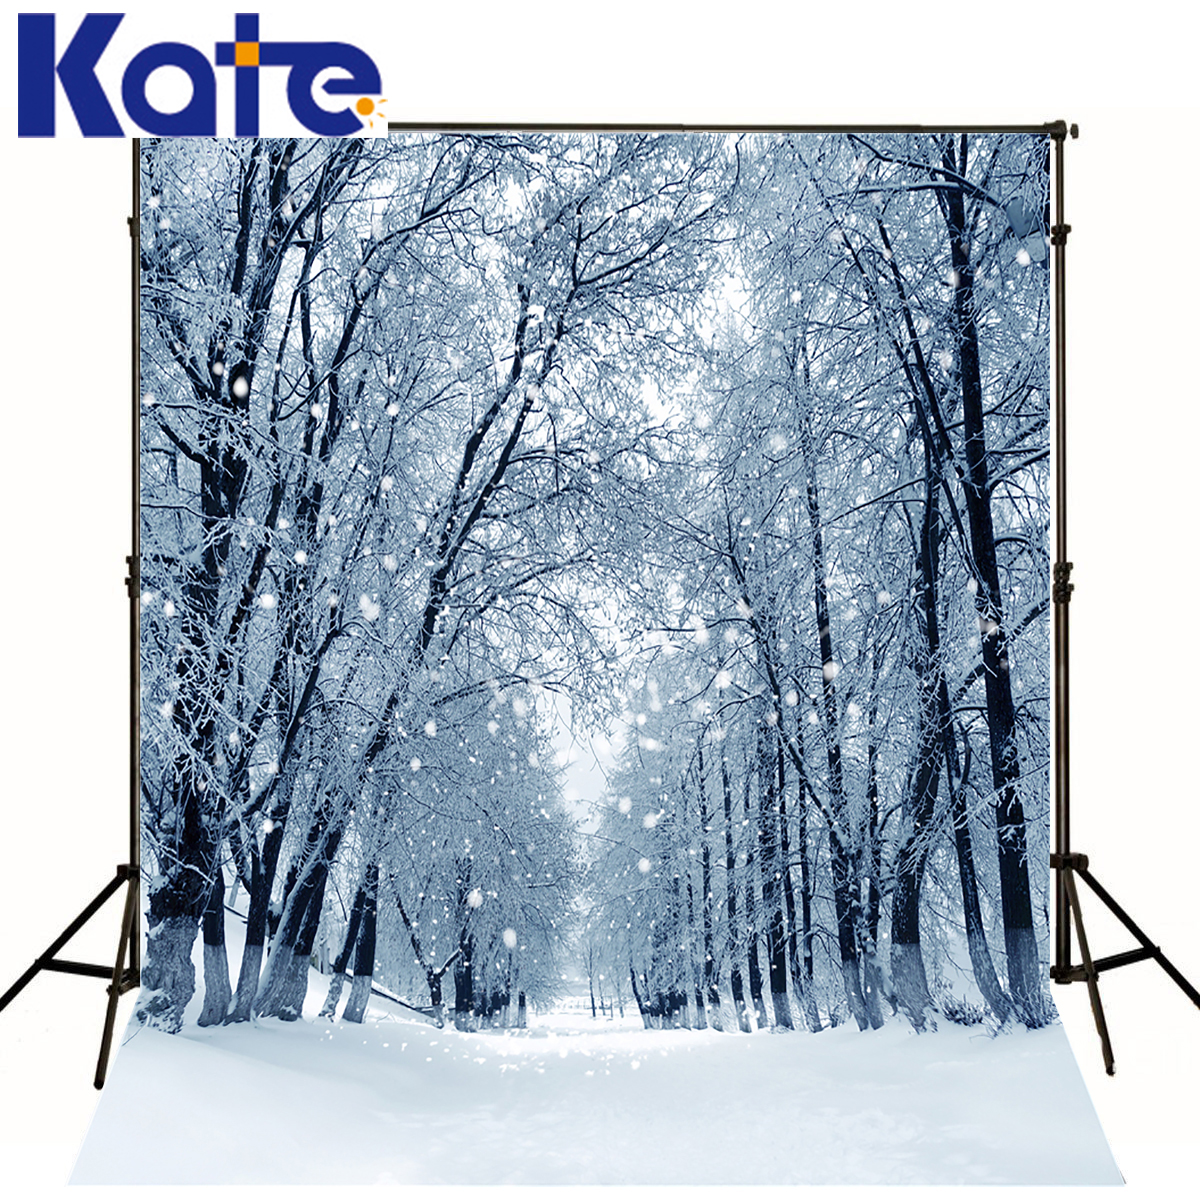 KATE Winter Photography Backdrop White Snow Spot Background Photography Scenery Long Road Forest Backdrops For Photo Studio kate christmas photography backdrops white frozen snow background tree winter backdrop for wedding photo studio bcakground